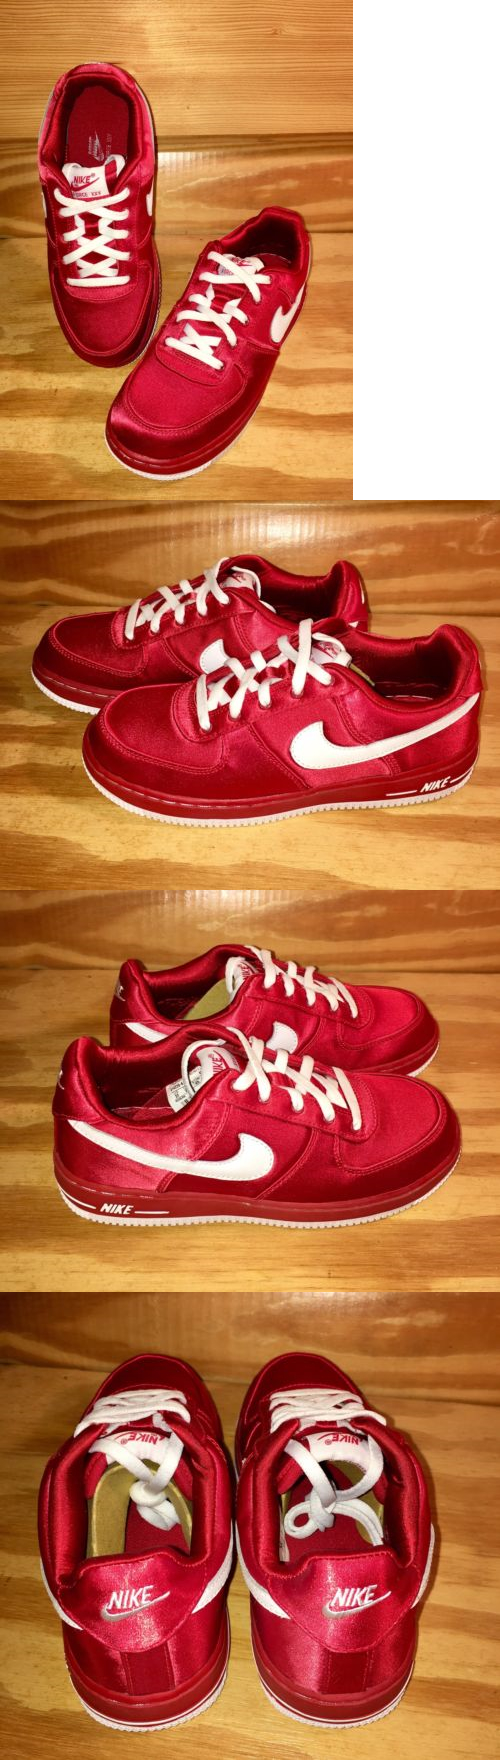 Unisex Shoes 155202  Nike Air Force 1 (Ps) Xxv Limited Edition Varsity Red 5108e4f15